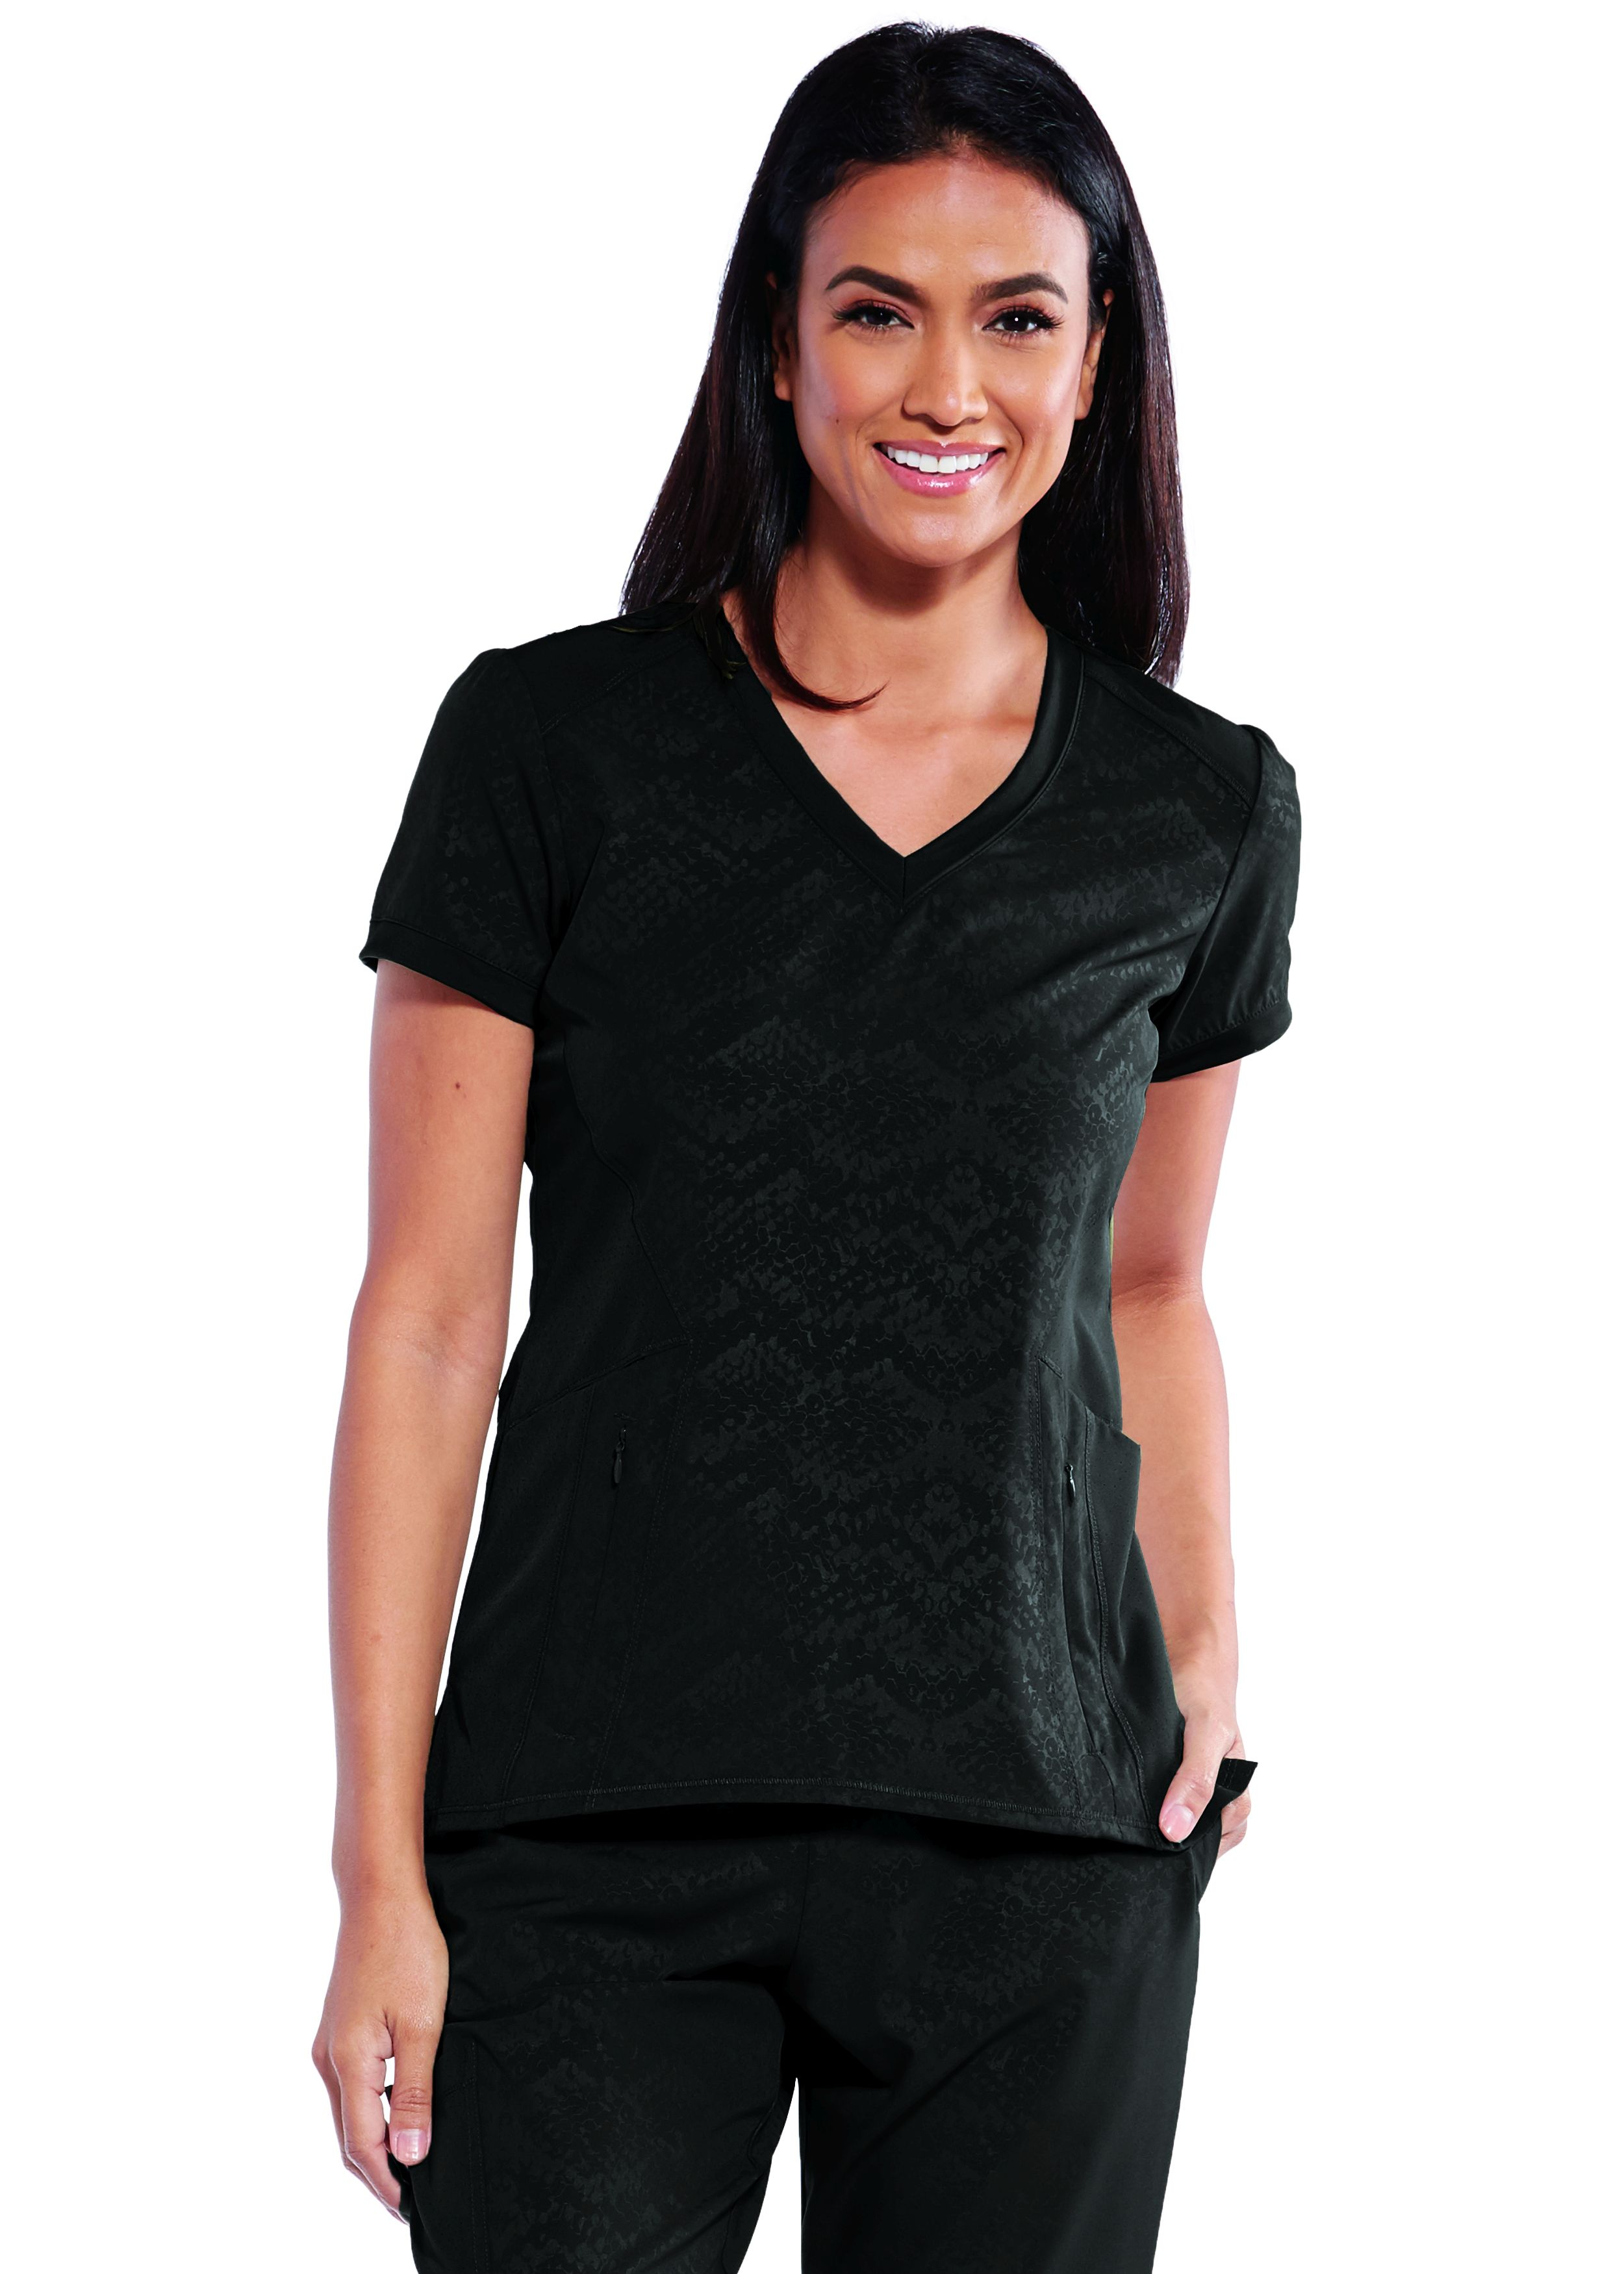 Barco One Wellness 4 Pocket V-Neck Zipper Pockets Perfect Top-Barco One